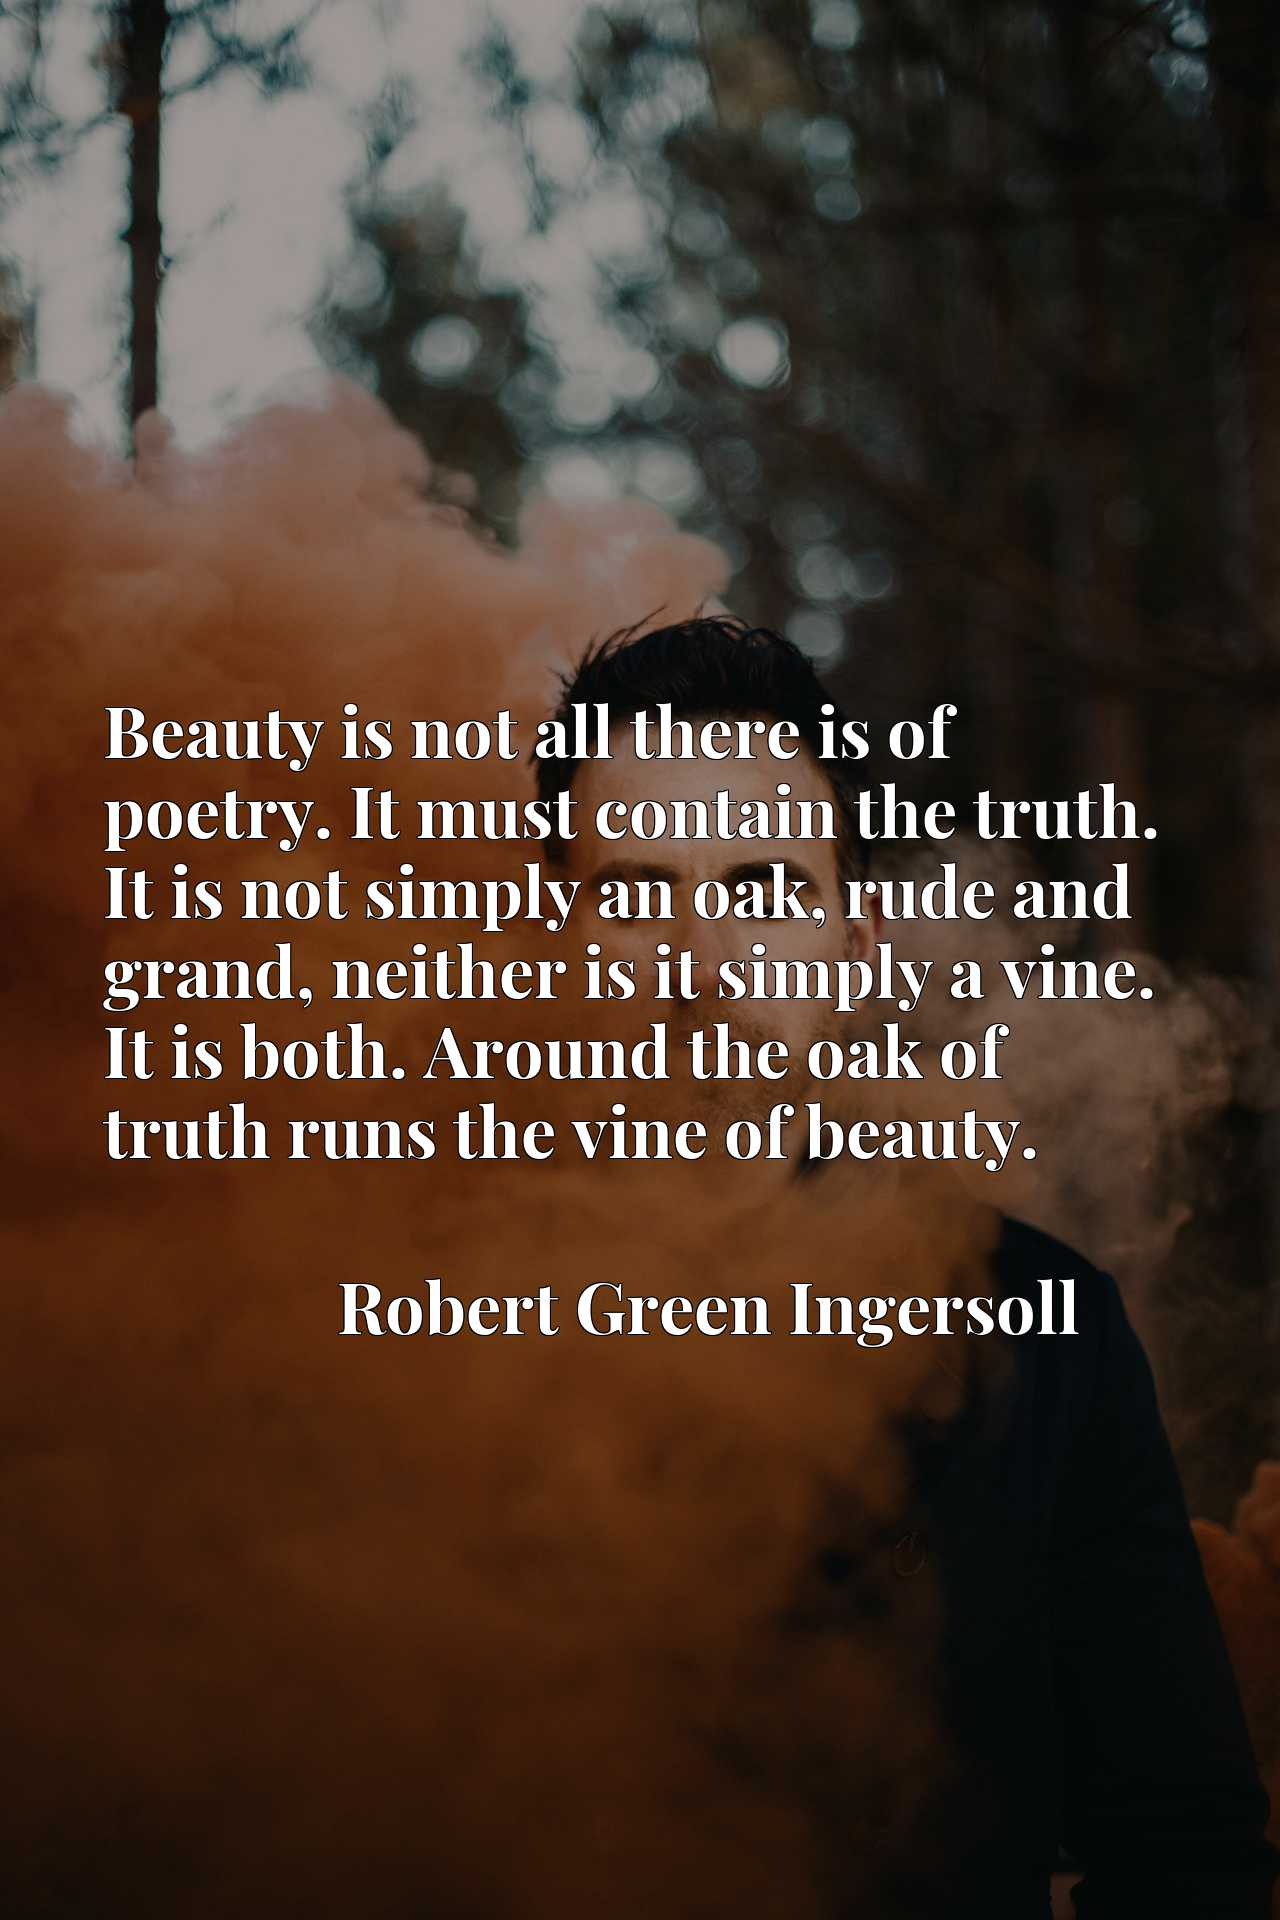 Beauty is not all there is of poetry. It must contain the truth. It is not simply an oak, rude and grand, neither is it simply a vine. It is both. Around the oak of truth runs the vine of beauty.